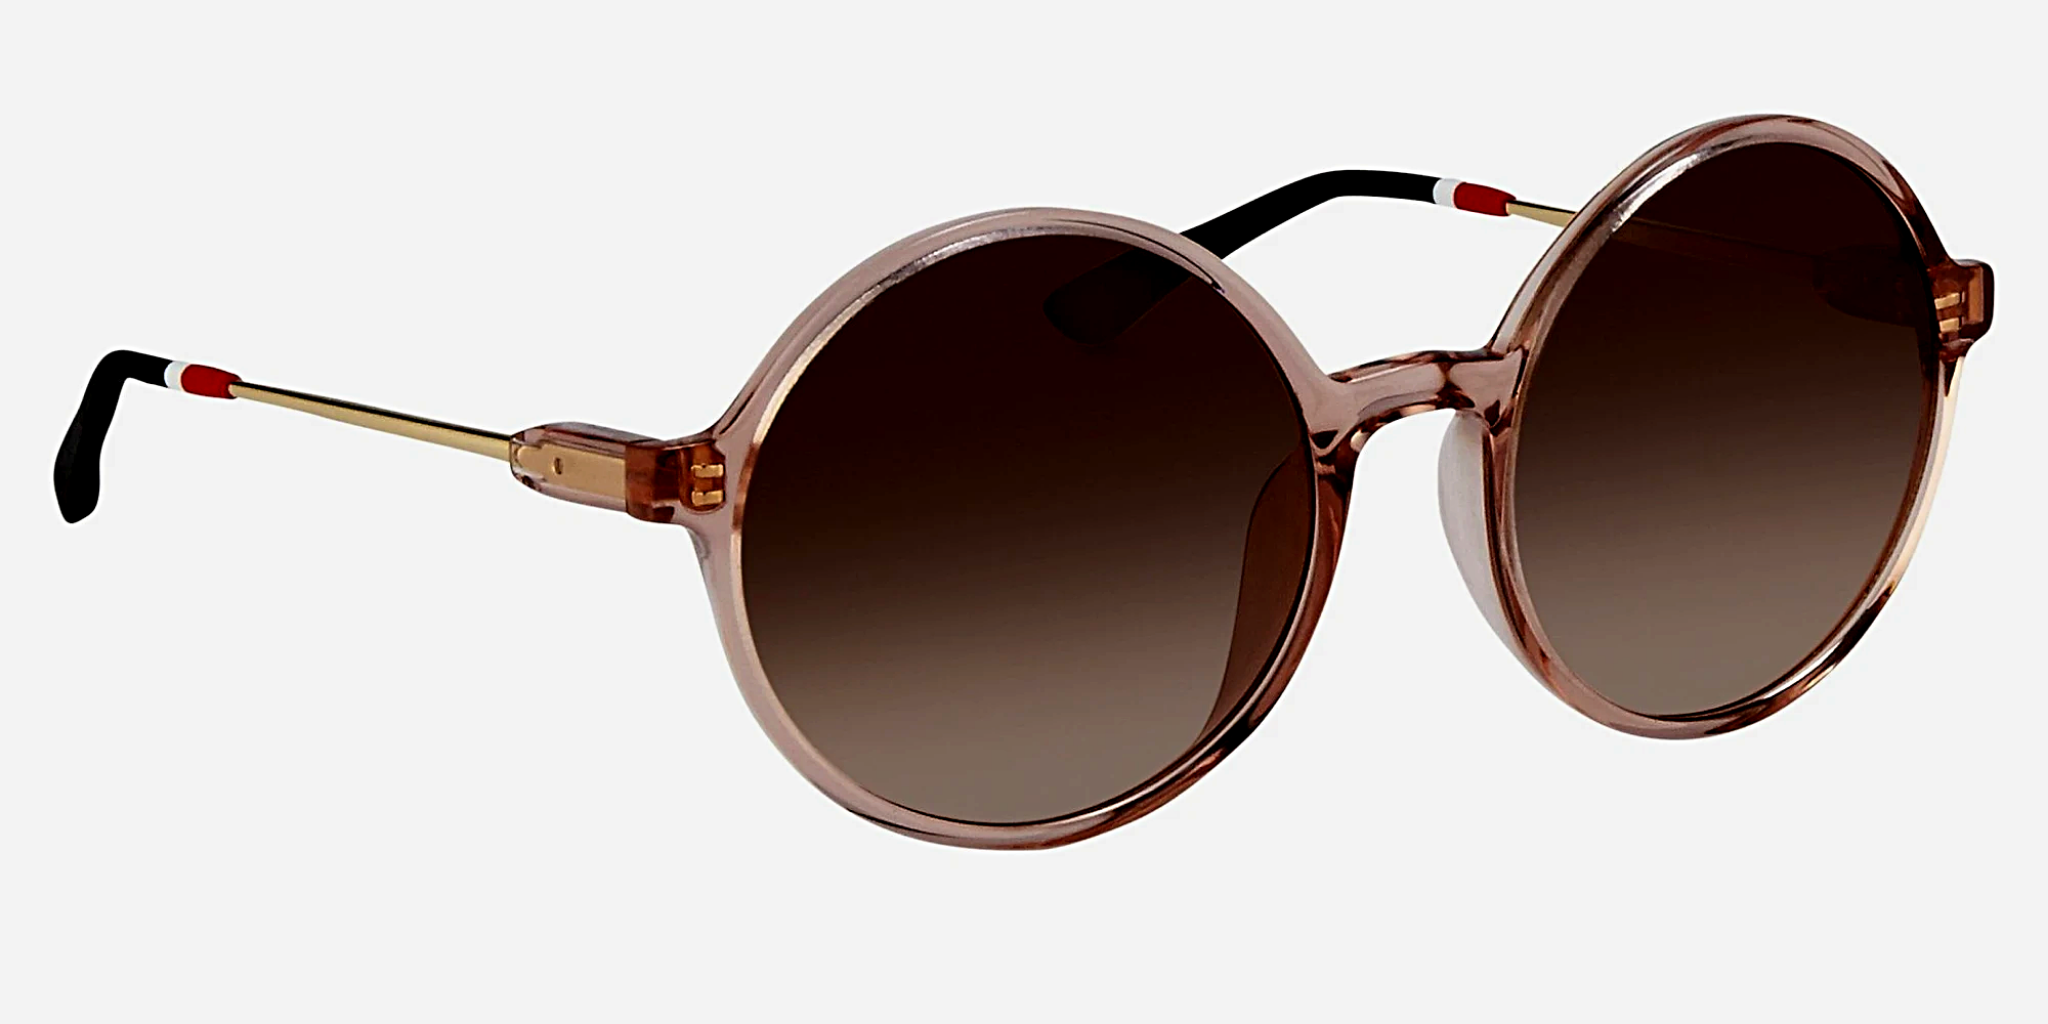 Orlebar Brown Sunglasses Round Fig Pink and Brown